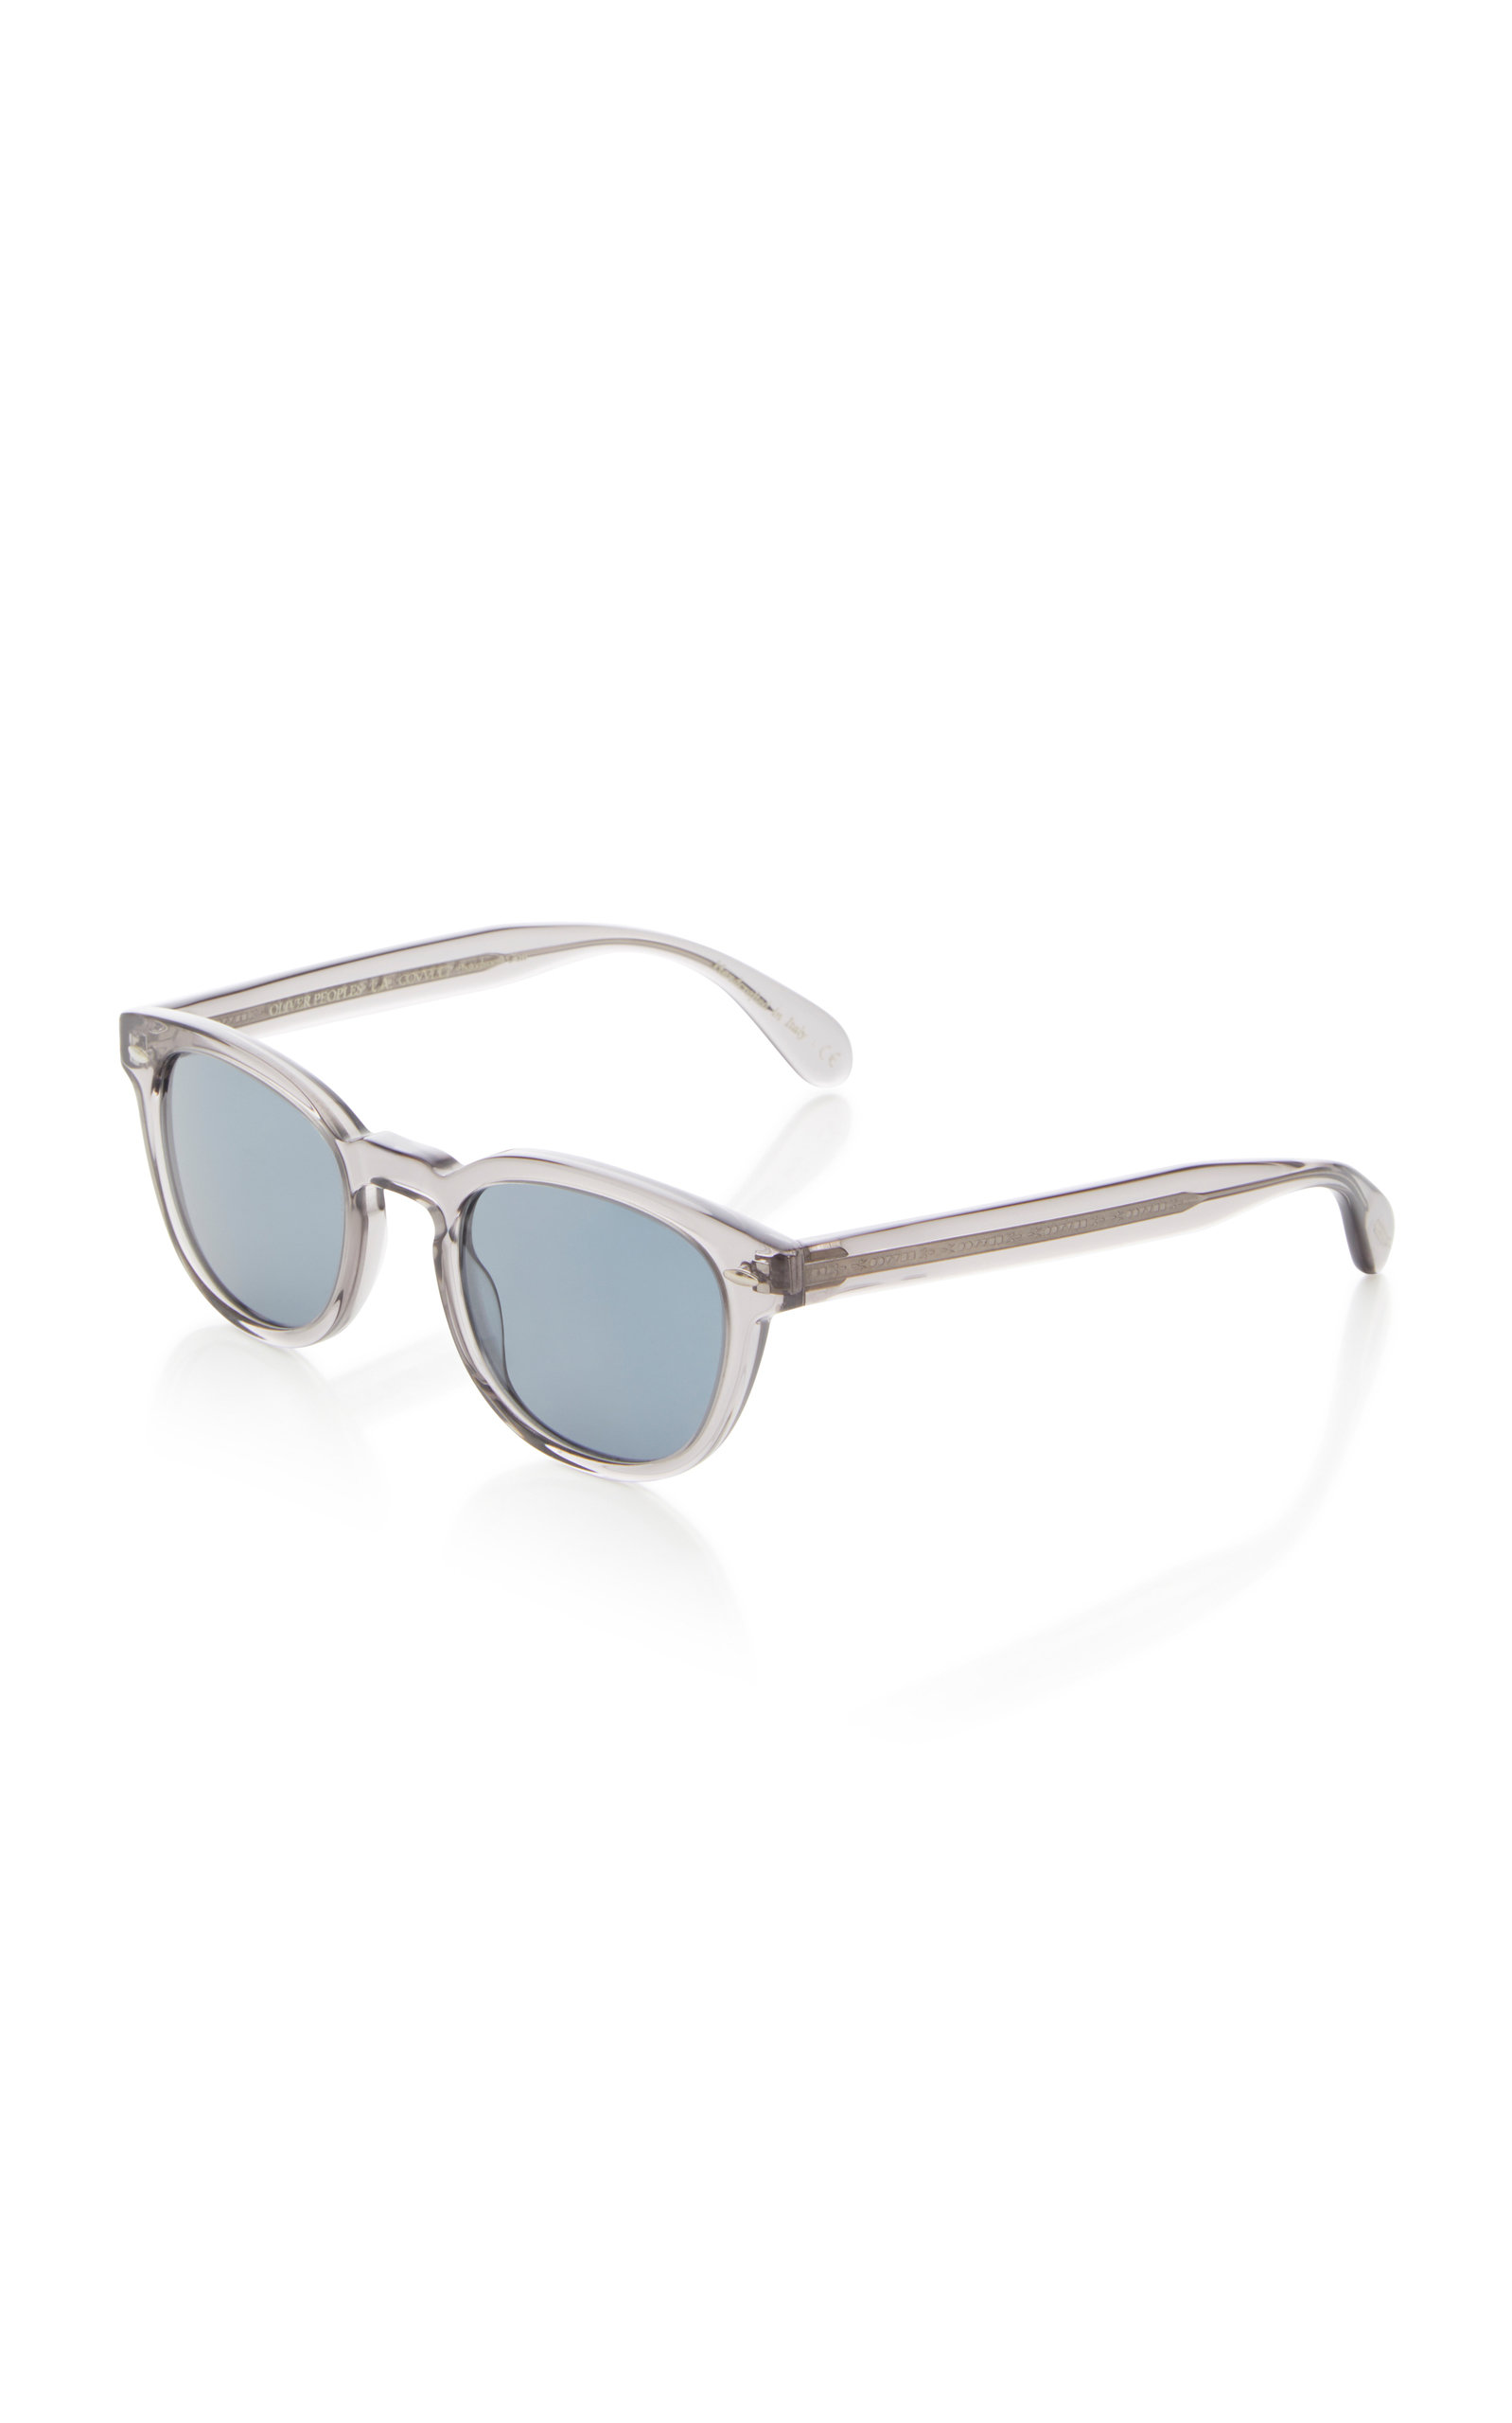 445bff4113 Oliver Peoples Men S Sheldrake Round Photochromic Sunglasses - Workman Gray  In Grey